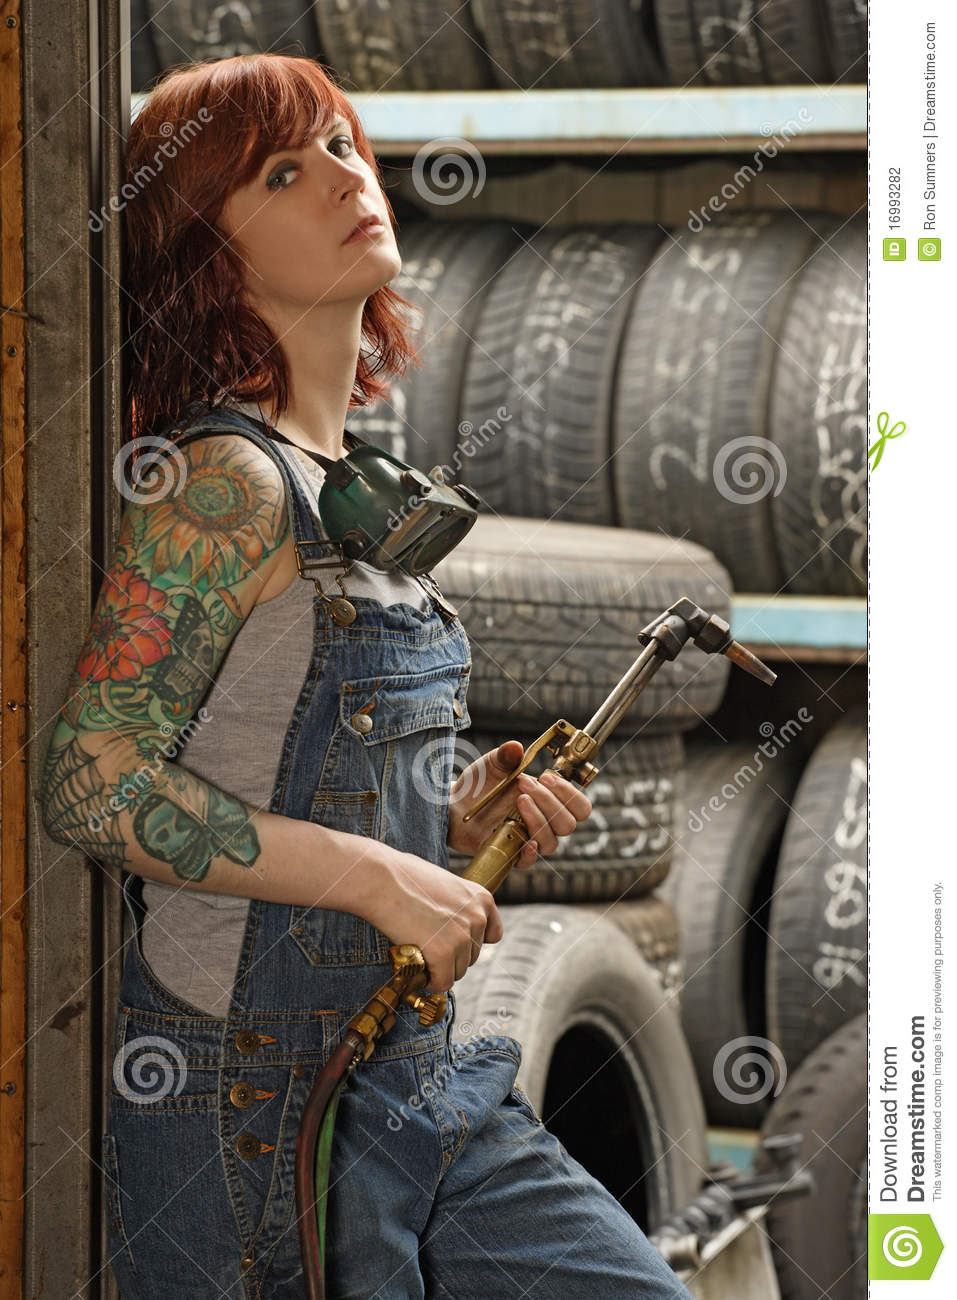 Female Welder With Tattoos Stock Photo Image Of Tattoo